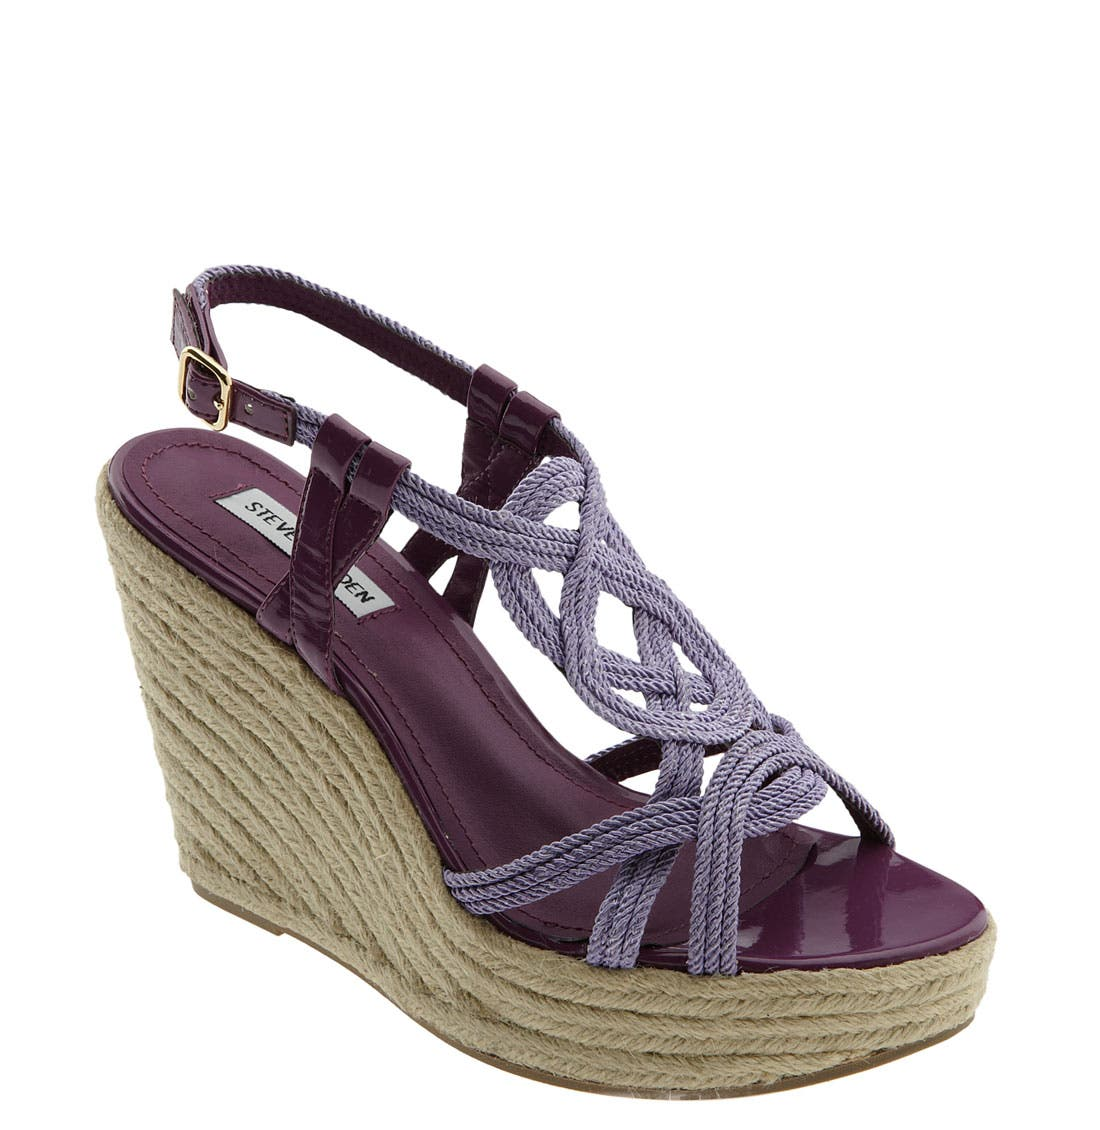 Alternate Image 1 Selected - Steve Madden 'Cerpent' Espadrille Sandal